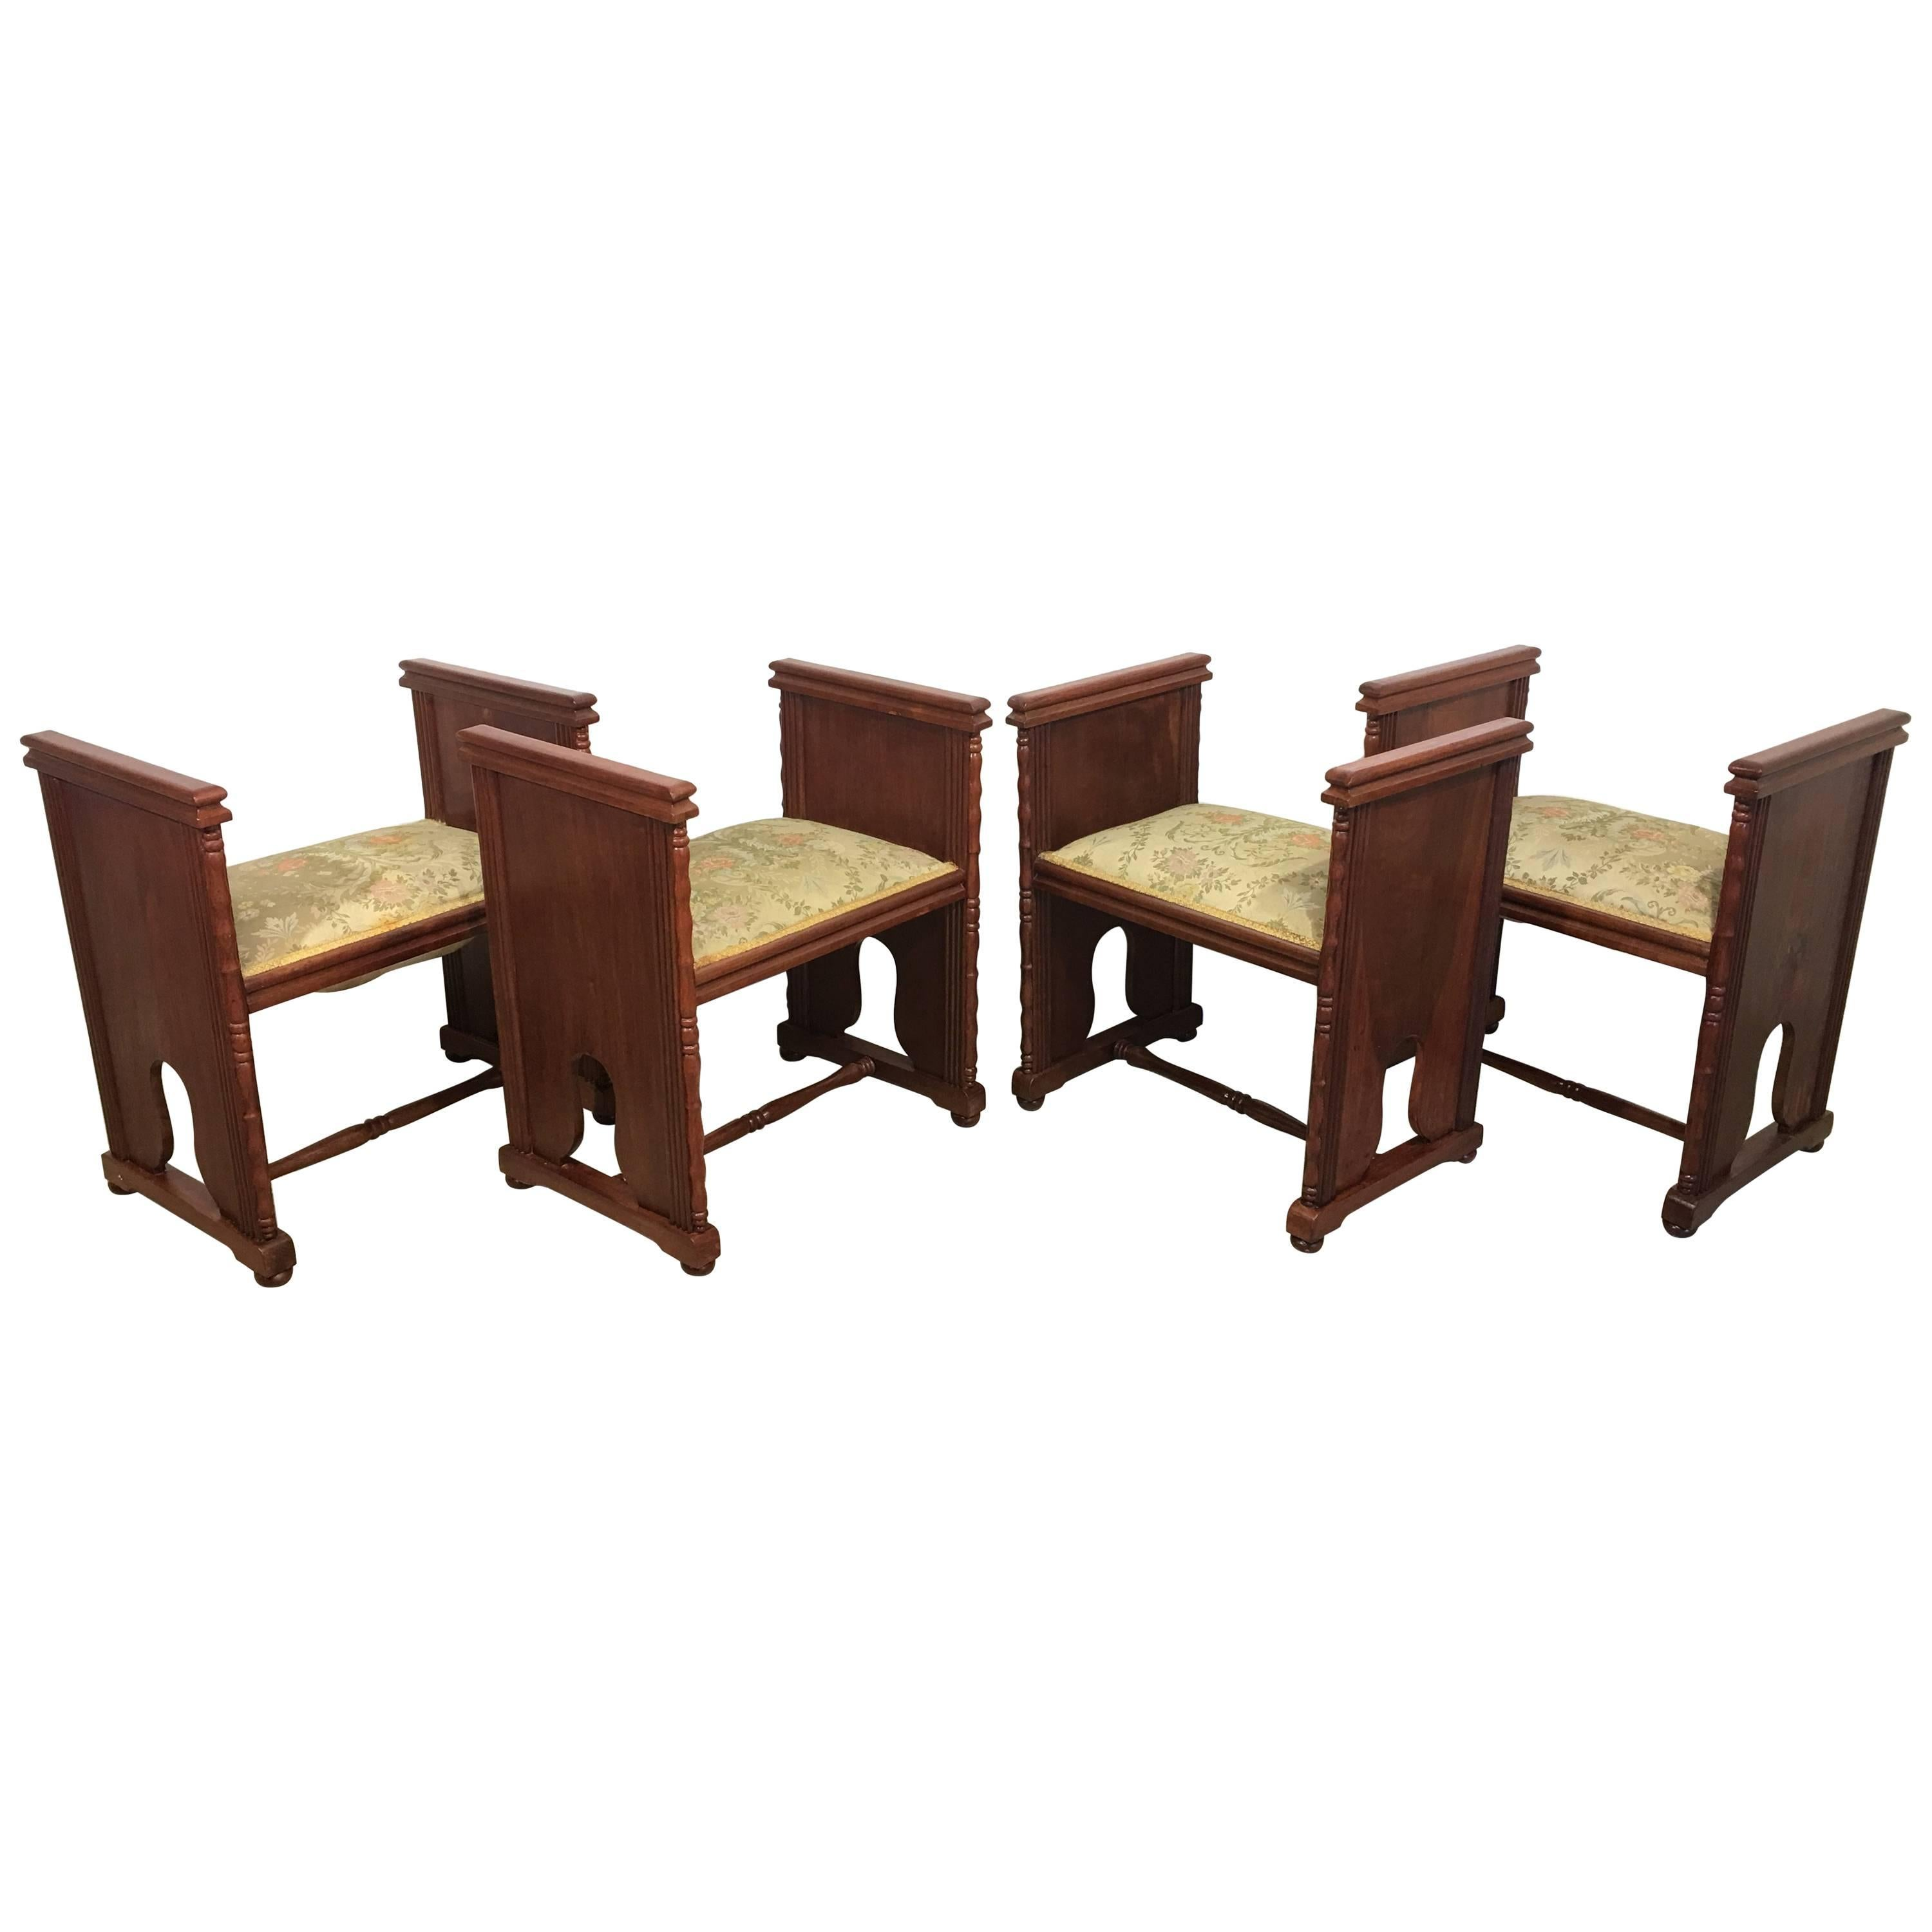 Set of Four Modernist Rectangular Upholstered Window Benches with Arms